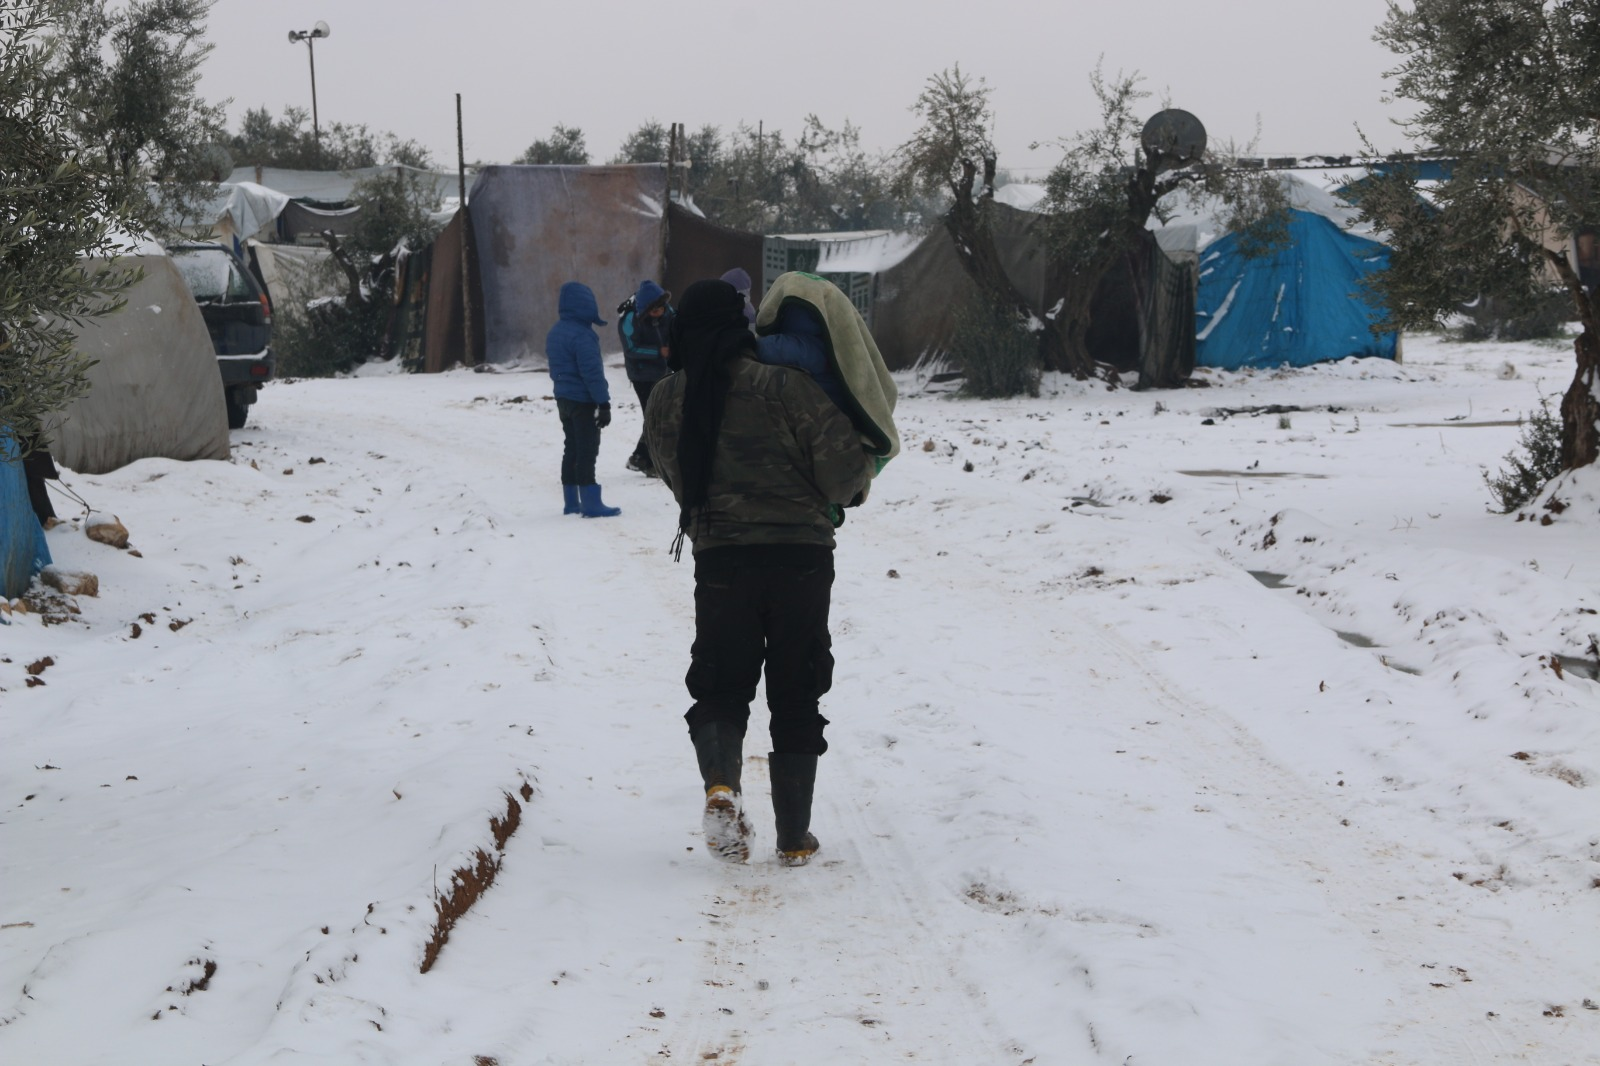 Displaced Syrian families in an informal displacement camp covered in snow.